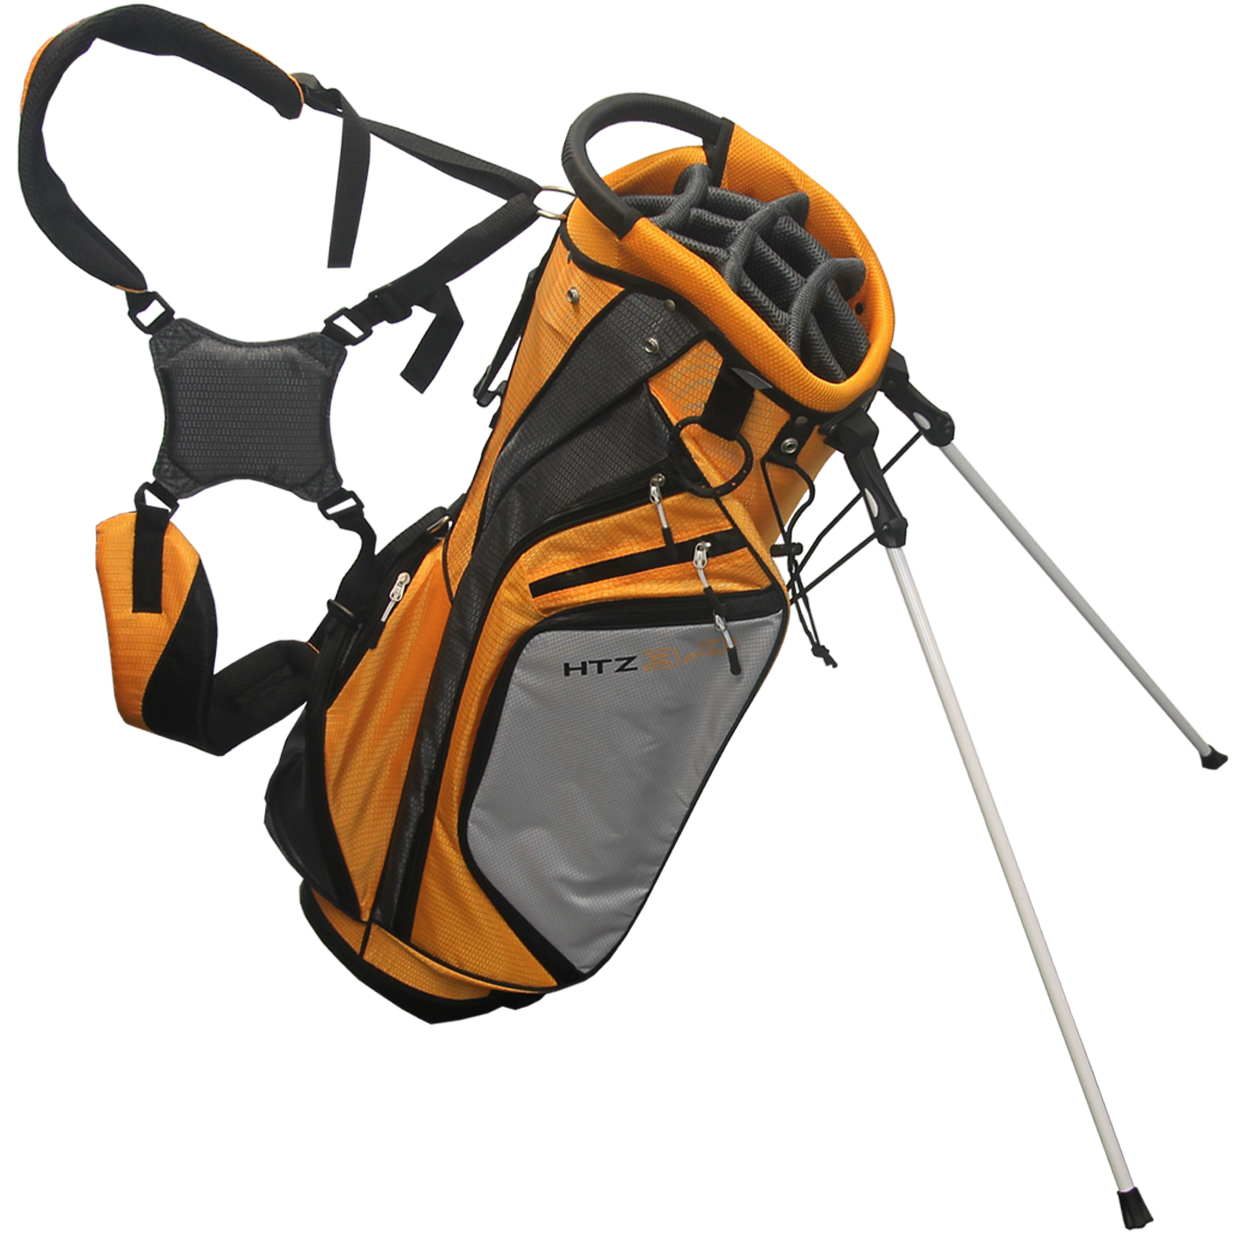 The Hot Z 3.0 HTZ Stand Bag features: Easy release tempered stand mechanism. 14 individual full length club dividers. 6 Zippered pockets including valuables pouch and insulated water bottle sleeve. Easy lift top and bottom handles and padded dual carry strap with extra thick hip pad. Pen sleeve, towel ring, velcro glove attachment, and umbrella holder.